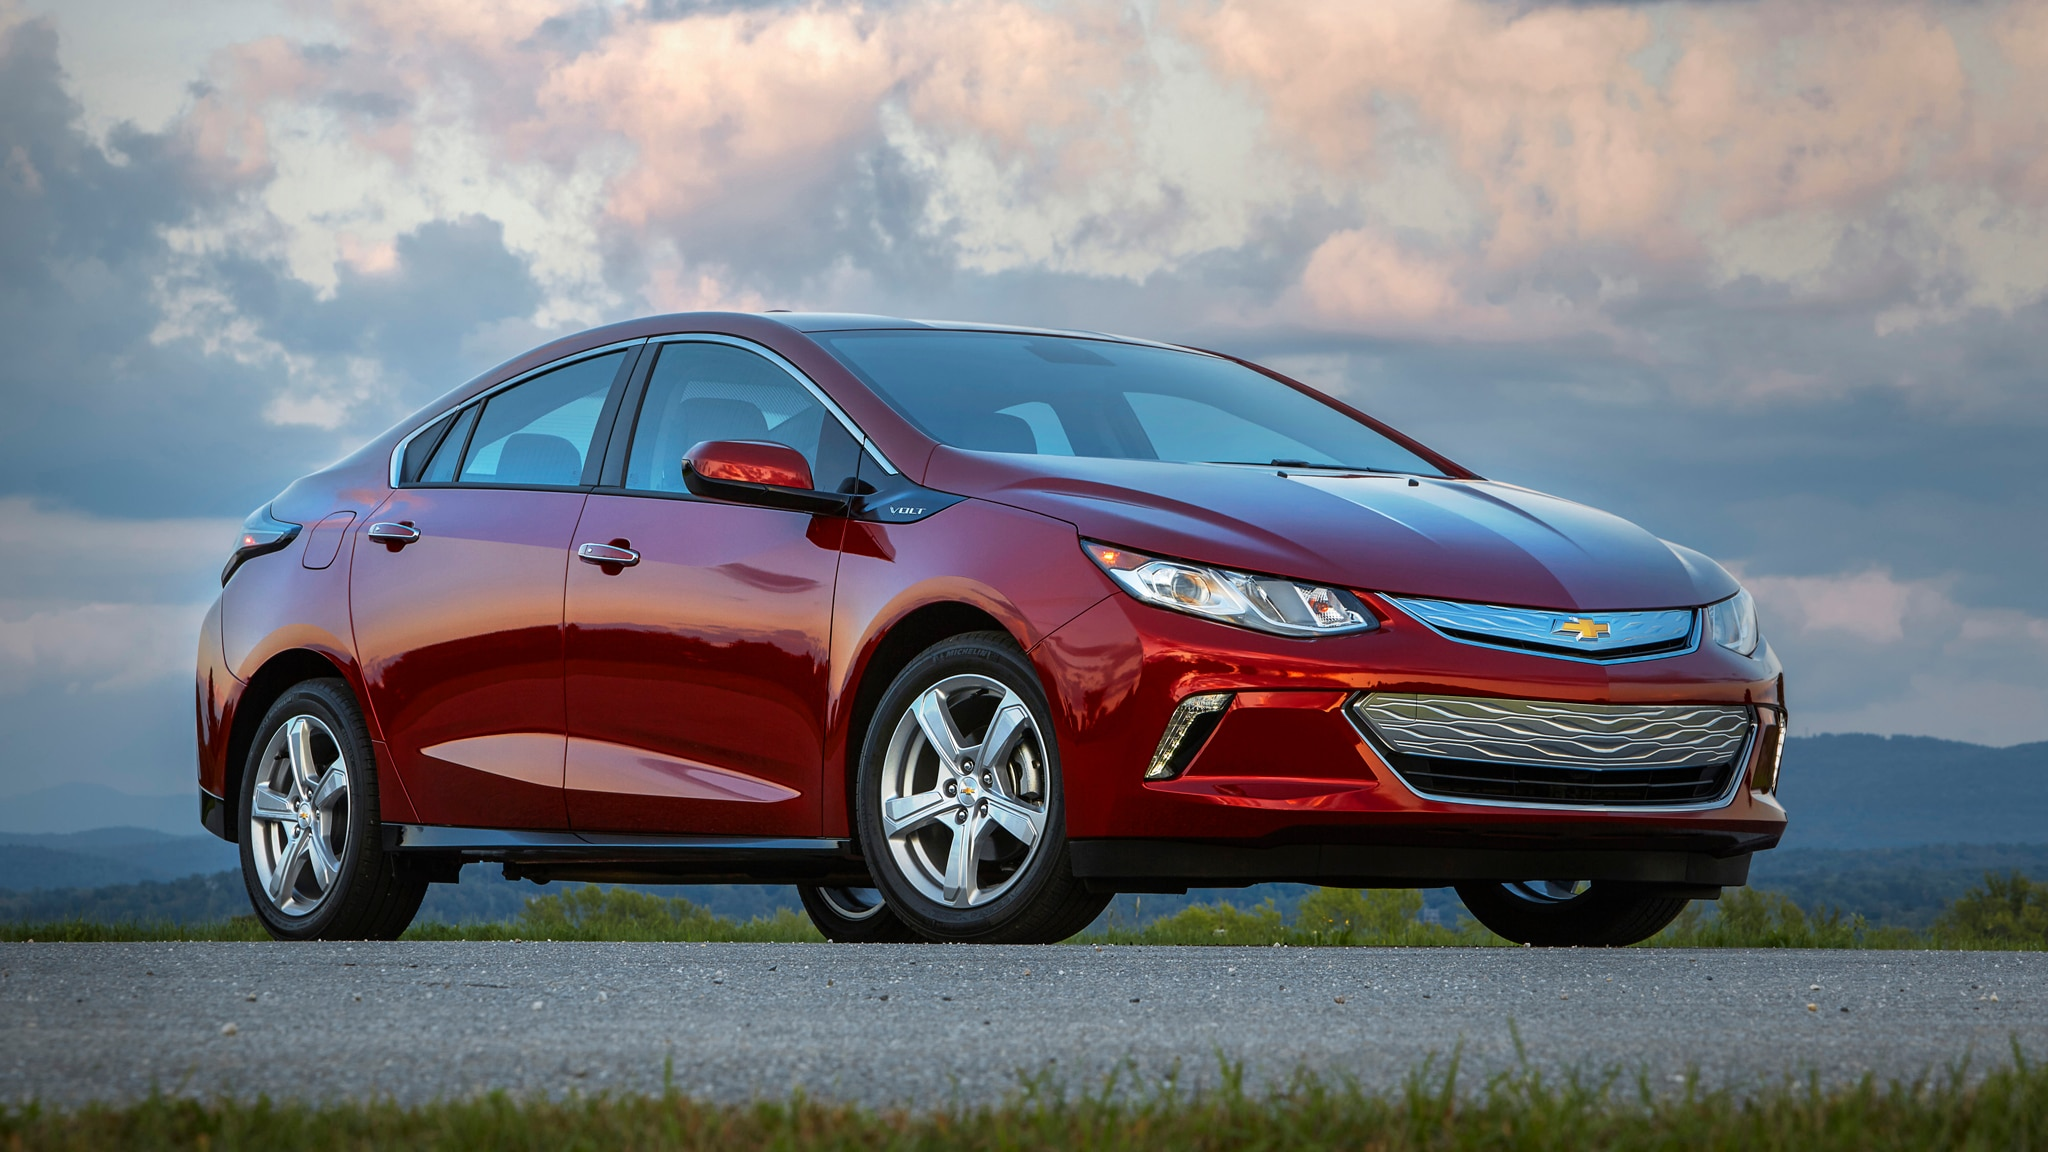 Chevy Volt Vs Bolt >> 2019 Chevrolet Bolt Ev And 2019 Chevrolet Volt Phev Review